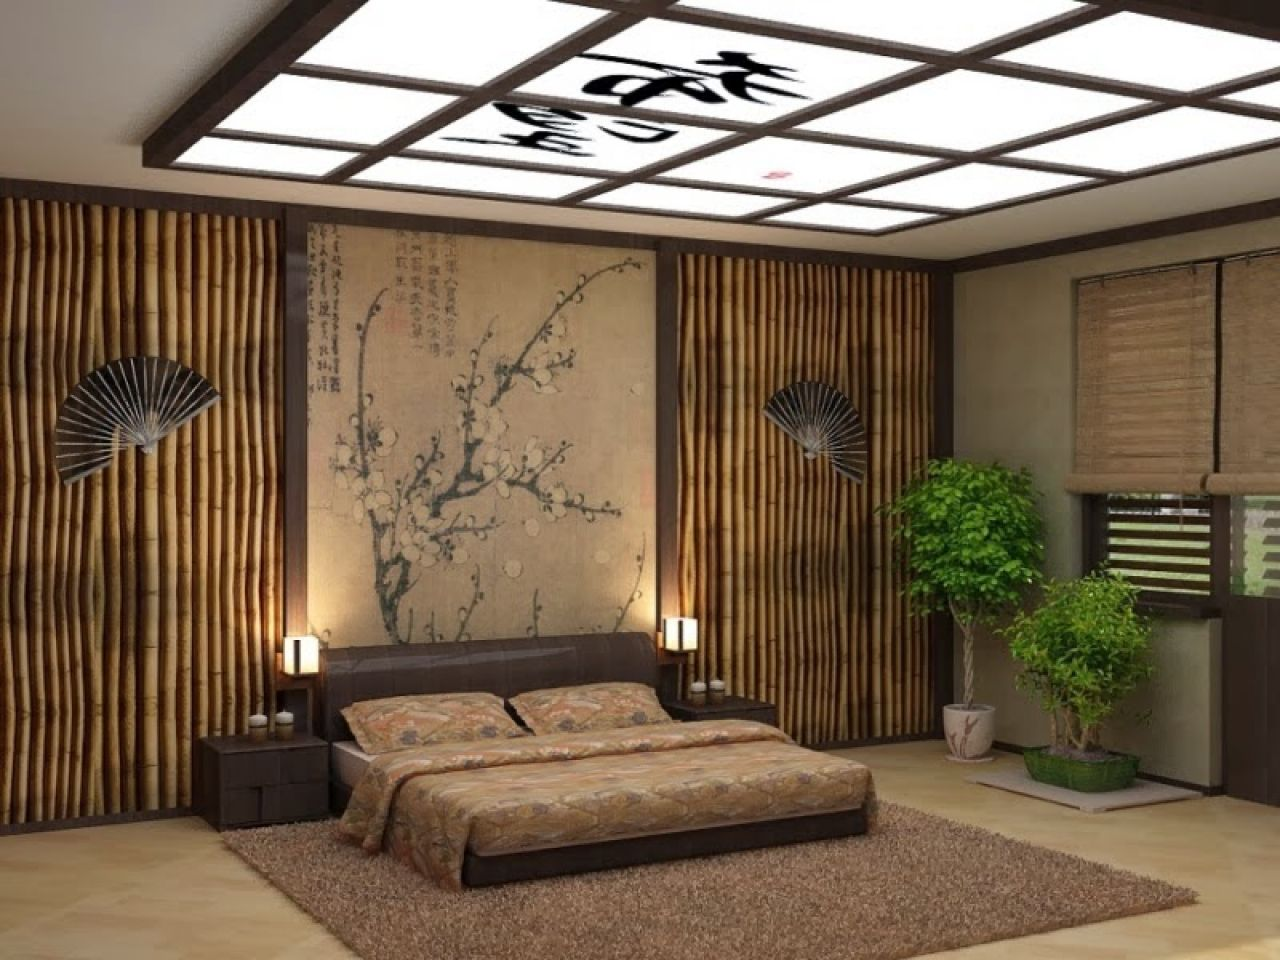 ASIAN Style Interiors. Oriental Bedroom Design With Japanese Influences.  Follow Rickysturn/home